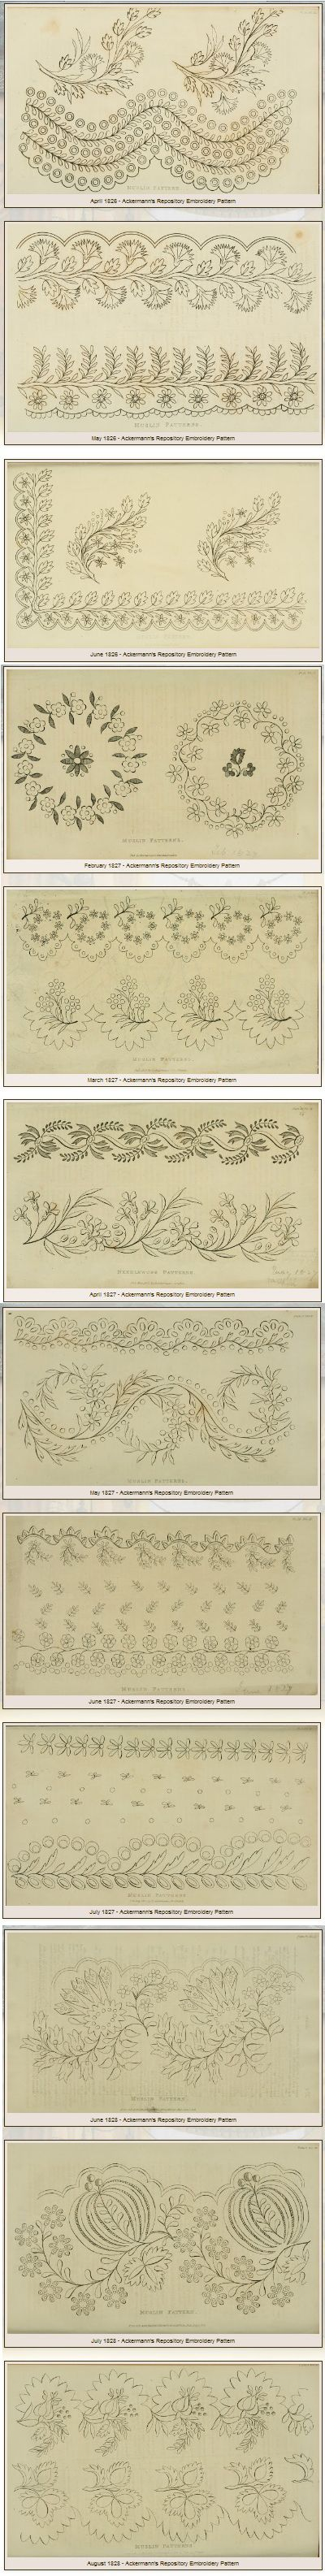 """39 beautiful free printable Needlework Patterns (from Ackermann's Repository 1826 - 1828) shared by Evelyn Kennedy Duncan. PLEASE NOTE: for full resolution printing follow the """"Download instructions"""" in her sidebar. http://www.ekduncan.com/2011/10/regency-era-needlework-patterns-from_13.html"""